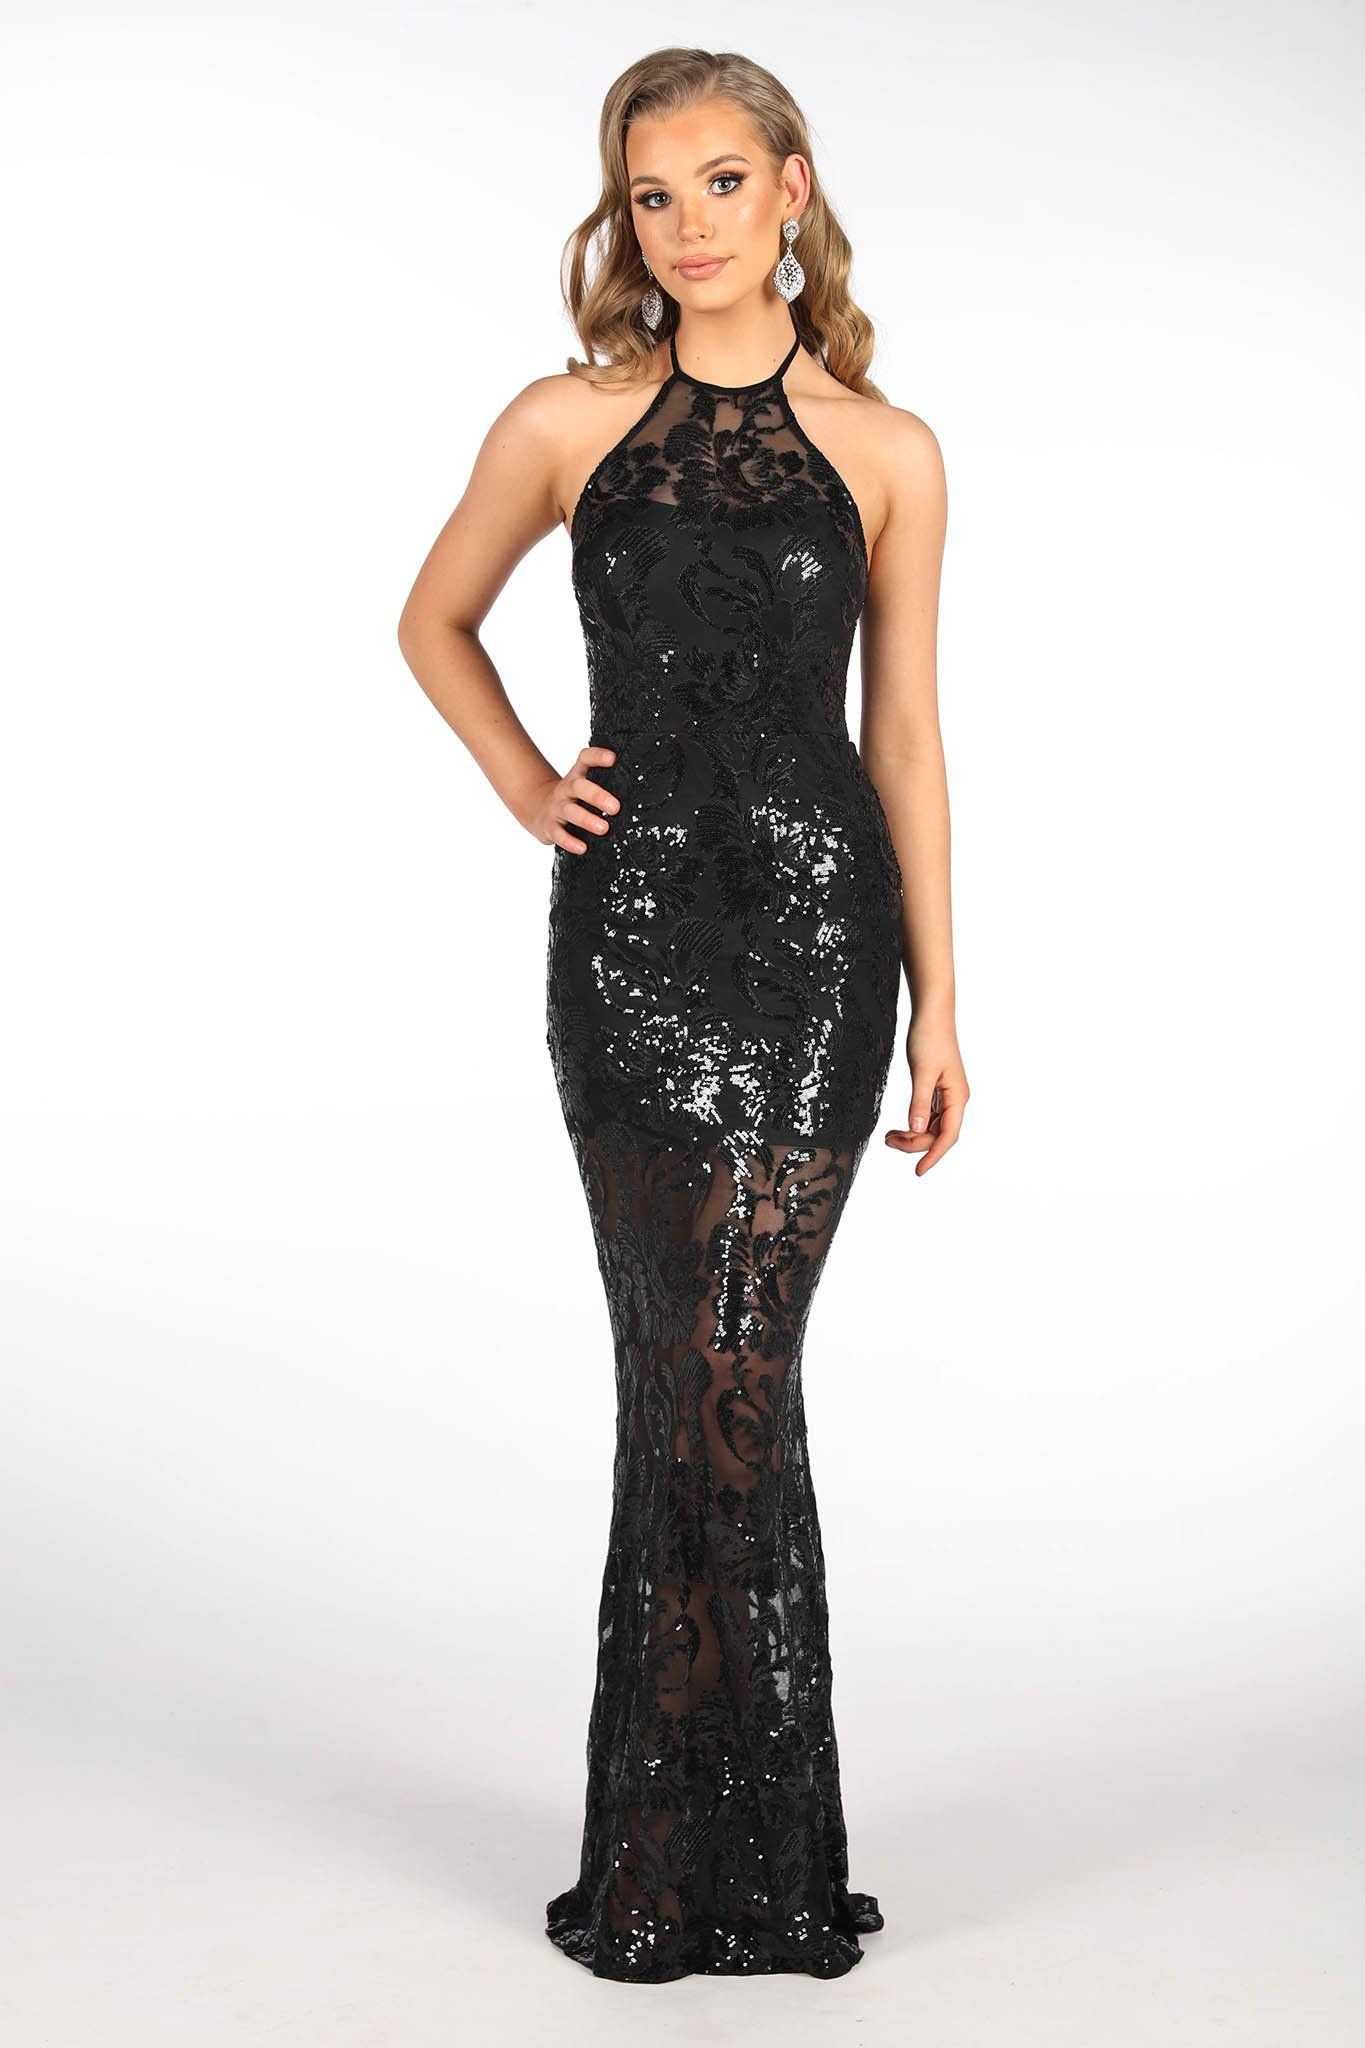 Black sheer sequin column maxi dress featuring floral pattern embroidered sequins, high racer neck, open back design and above knee length lining